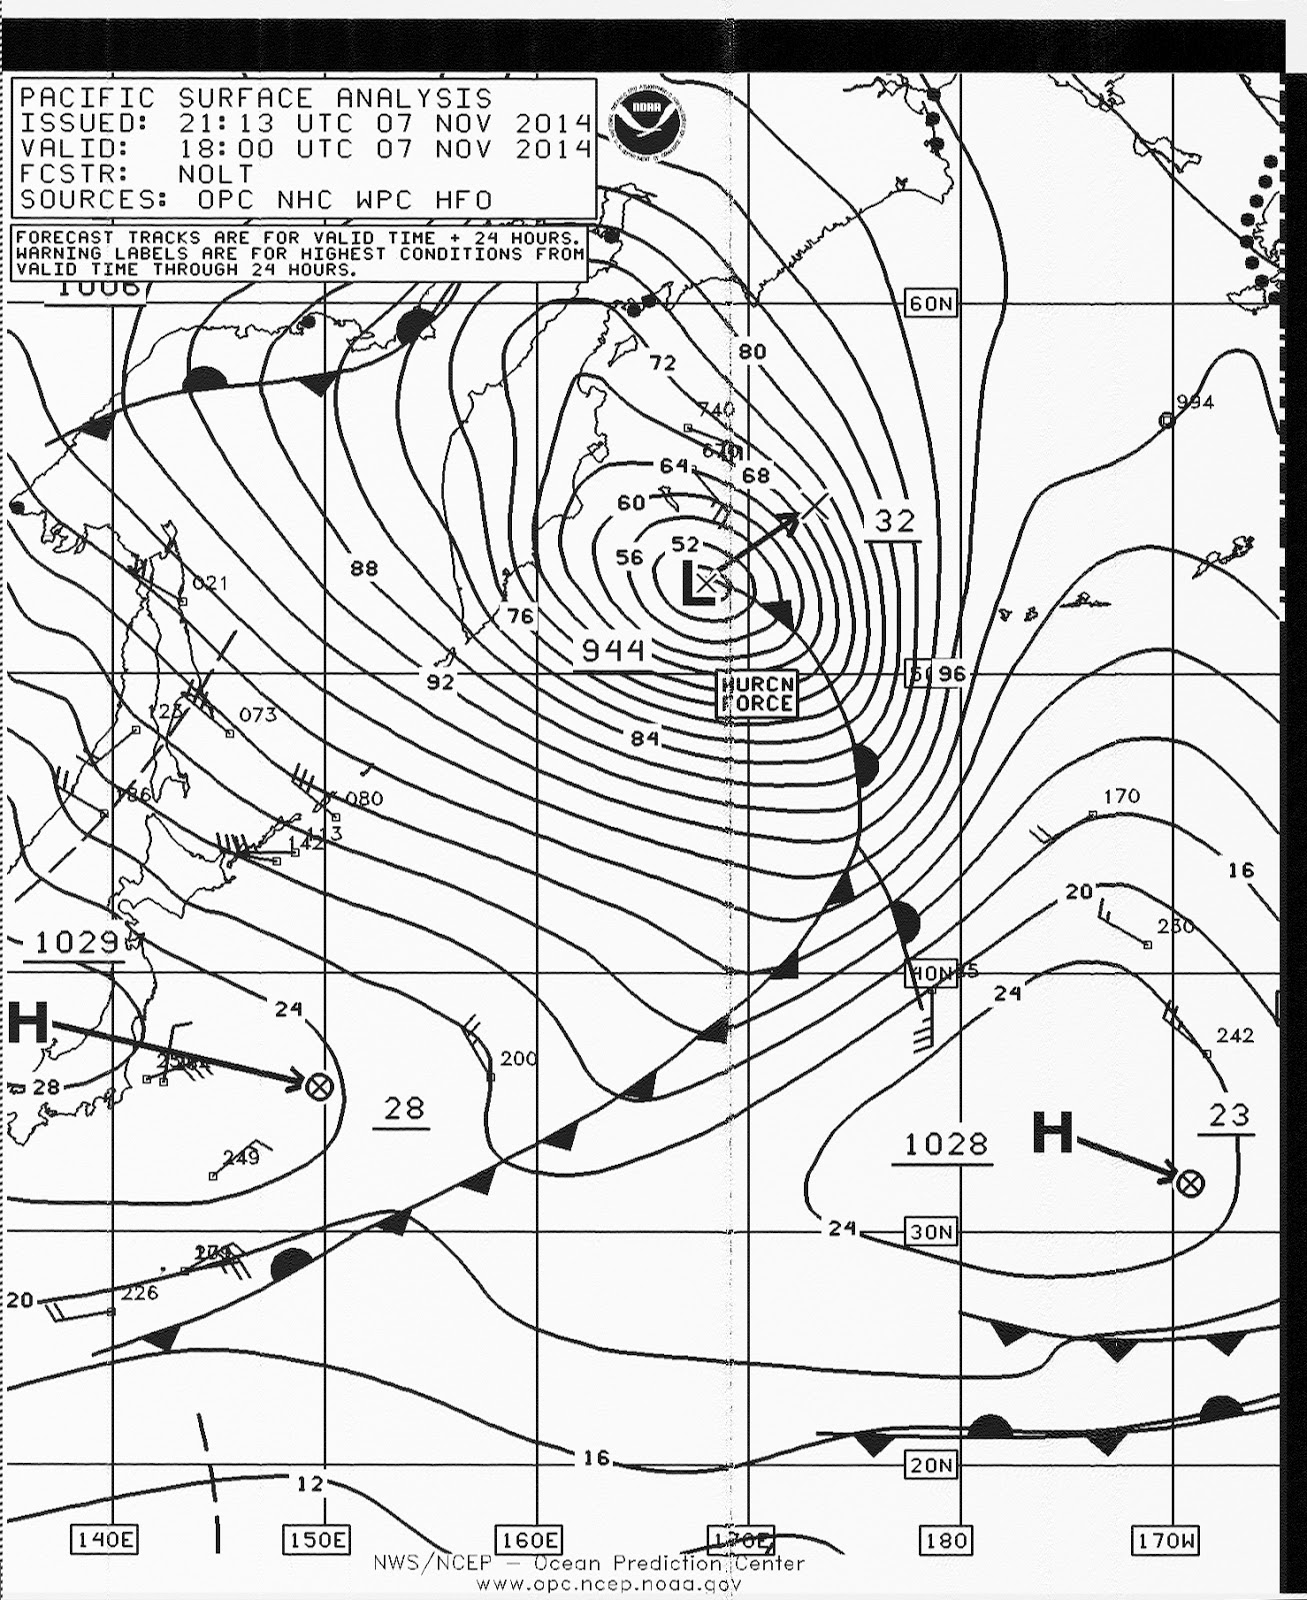 Utility Planet: NMC Pacific Surface Analysis Showing Nov